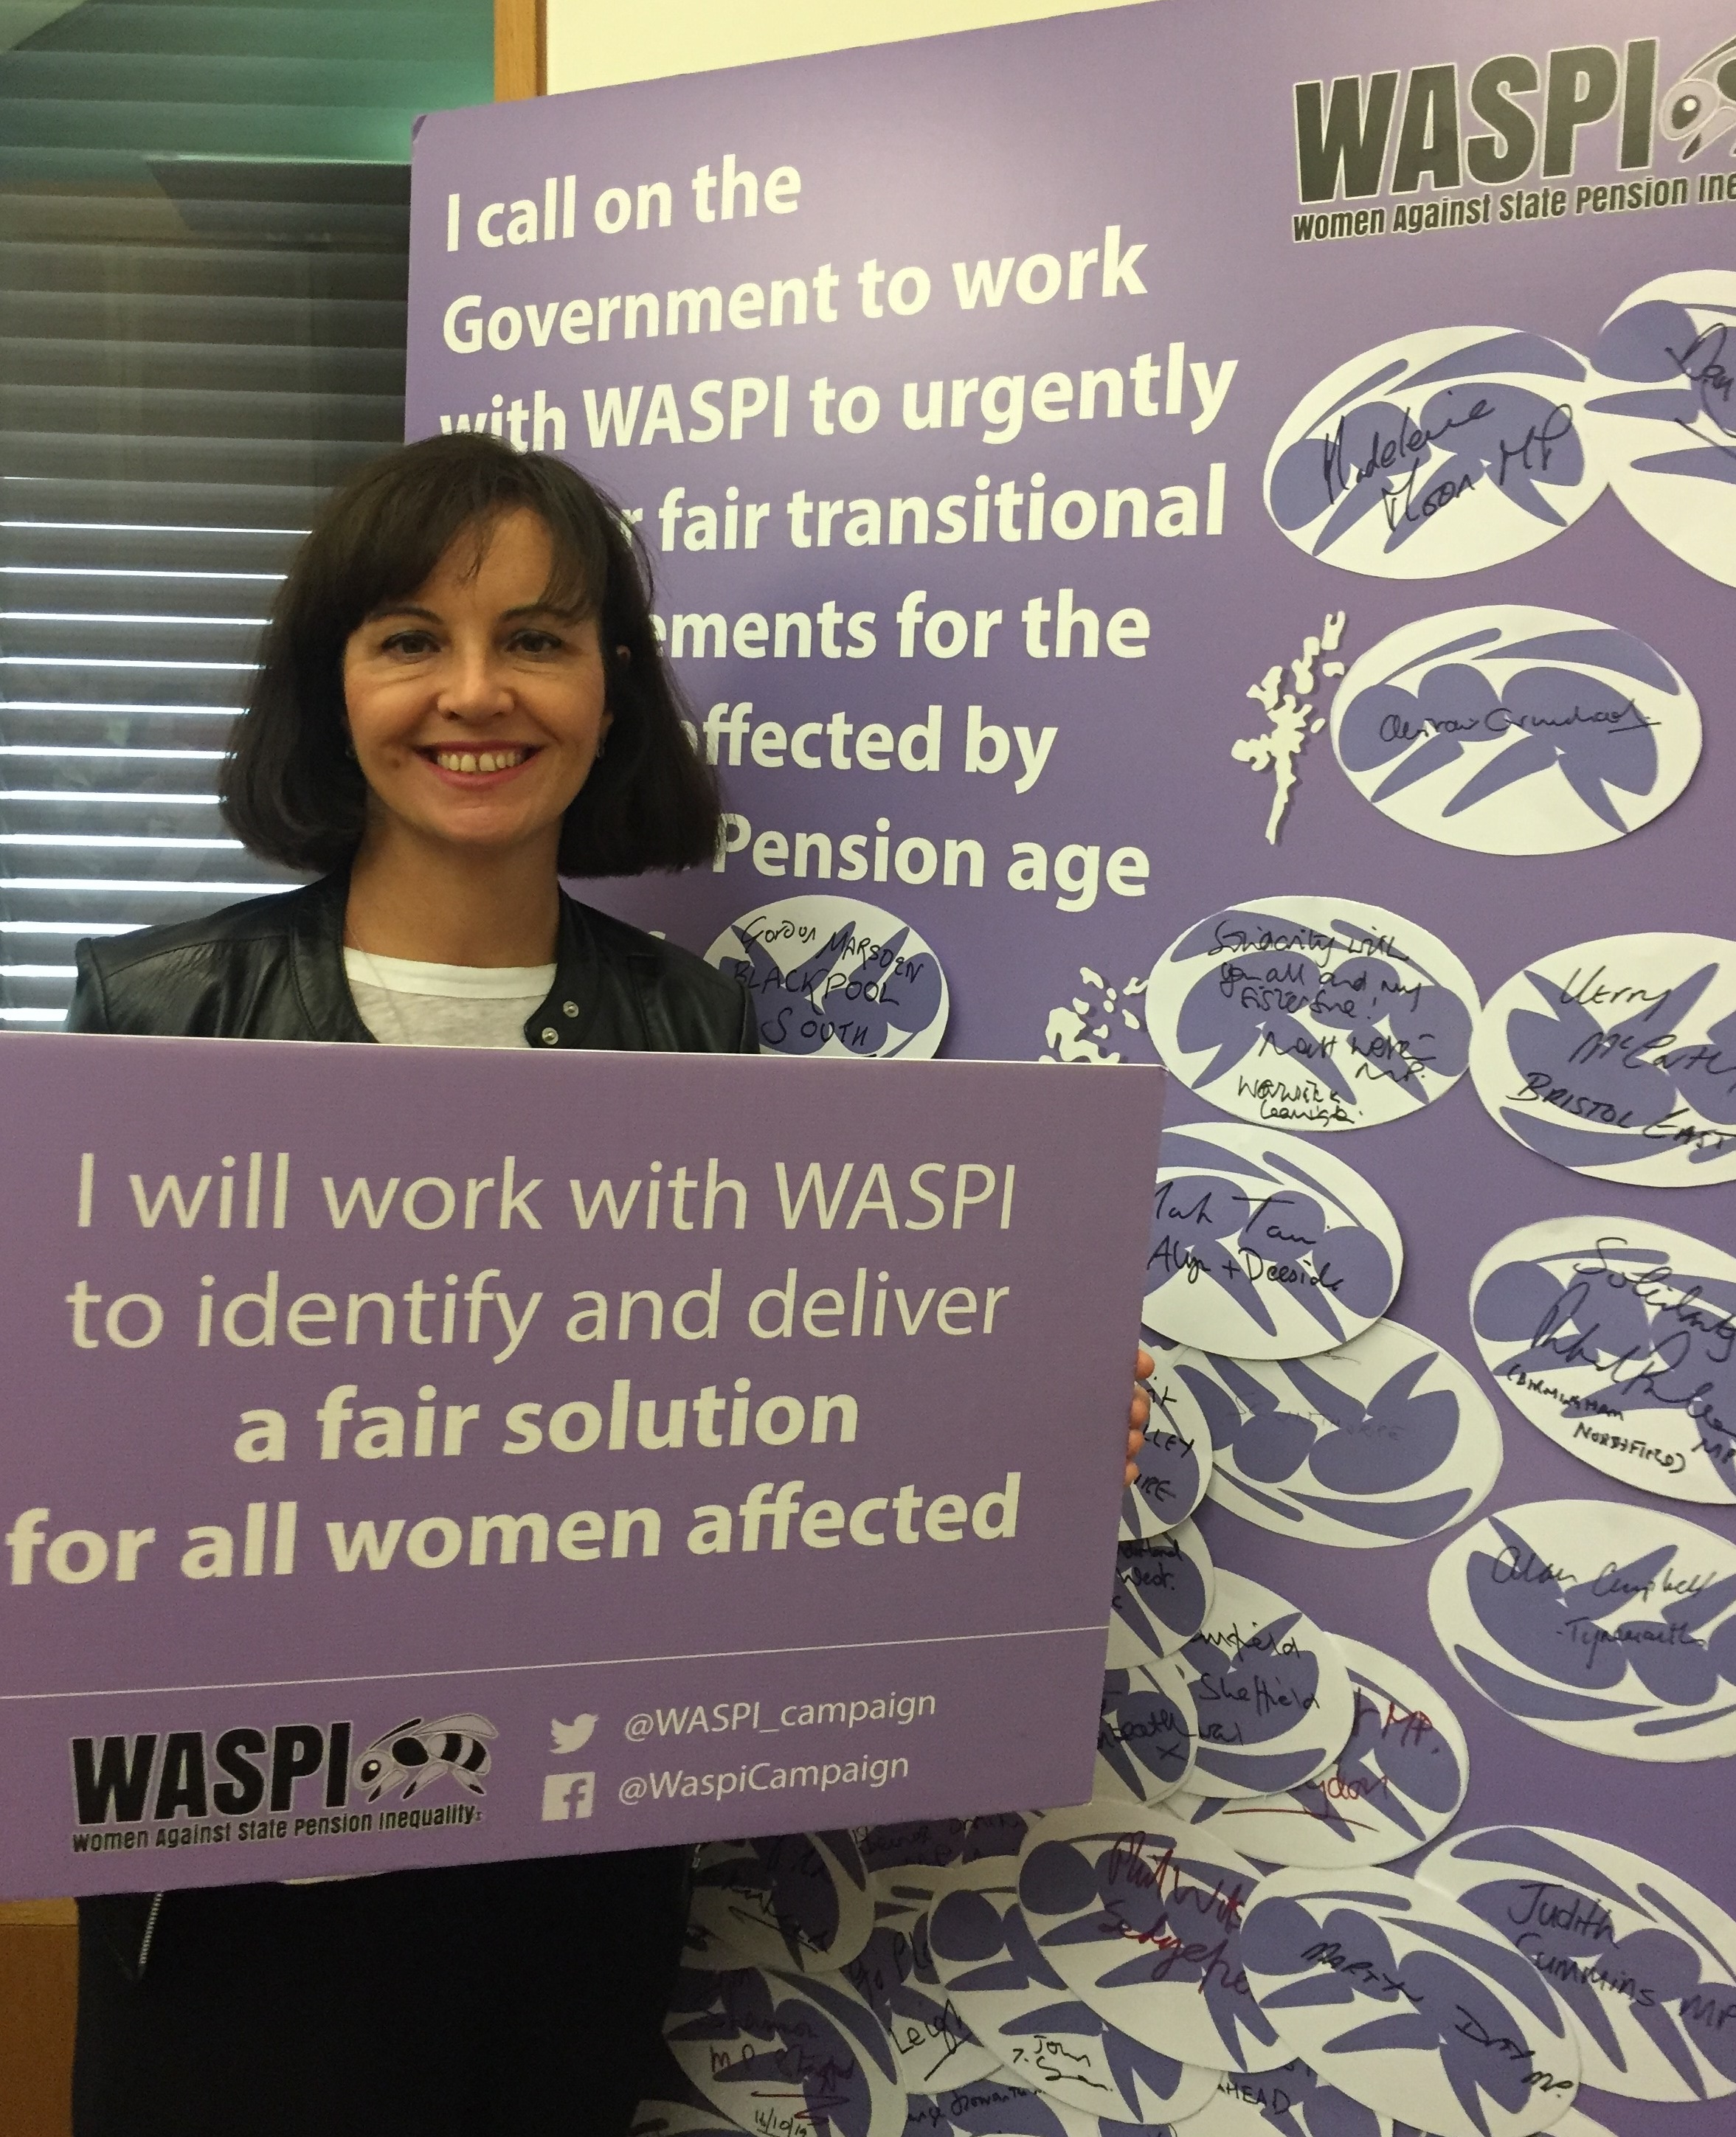 WASPI_pledge_Caroline_161019_cropped.jpg